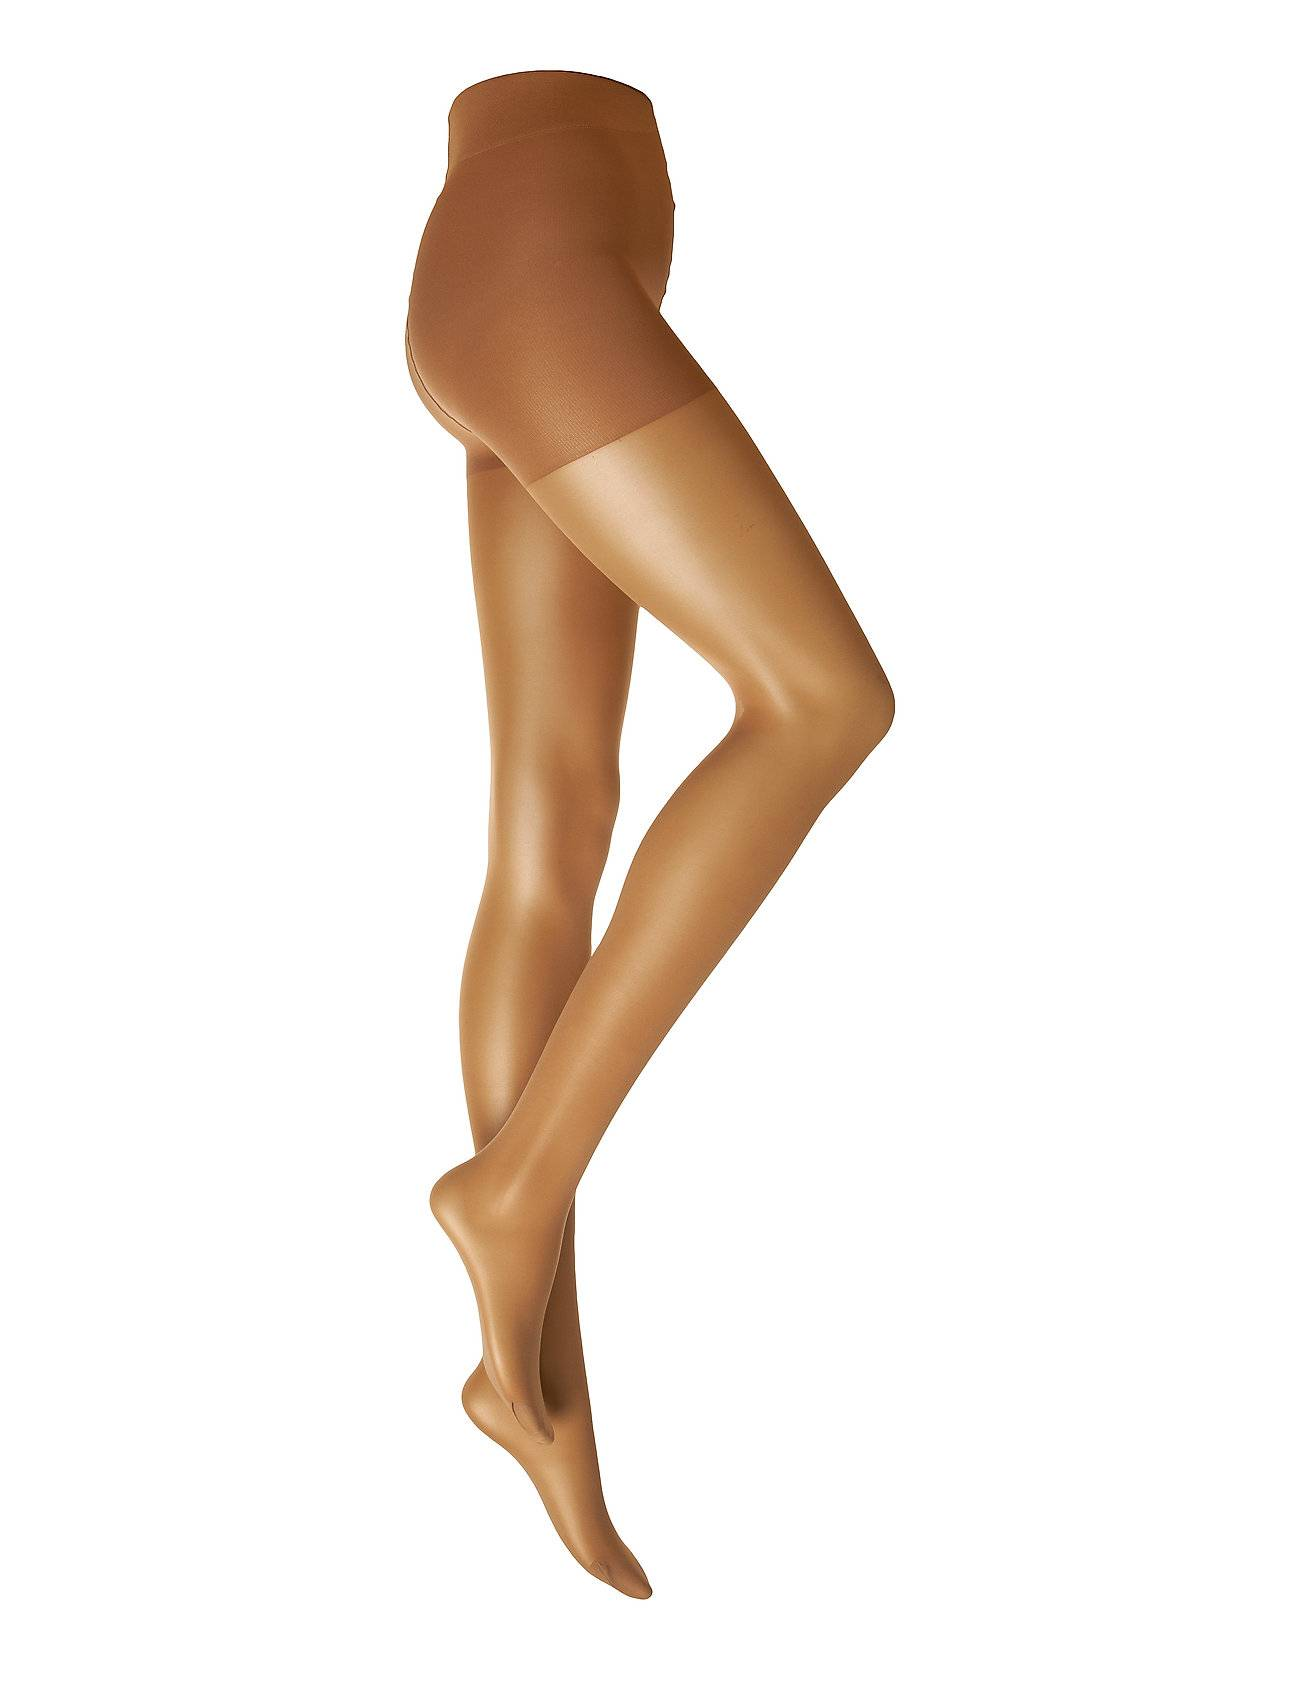 Swedish Stockings Irma Support Tights 30d